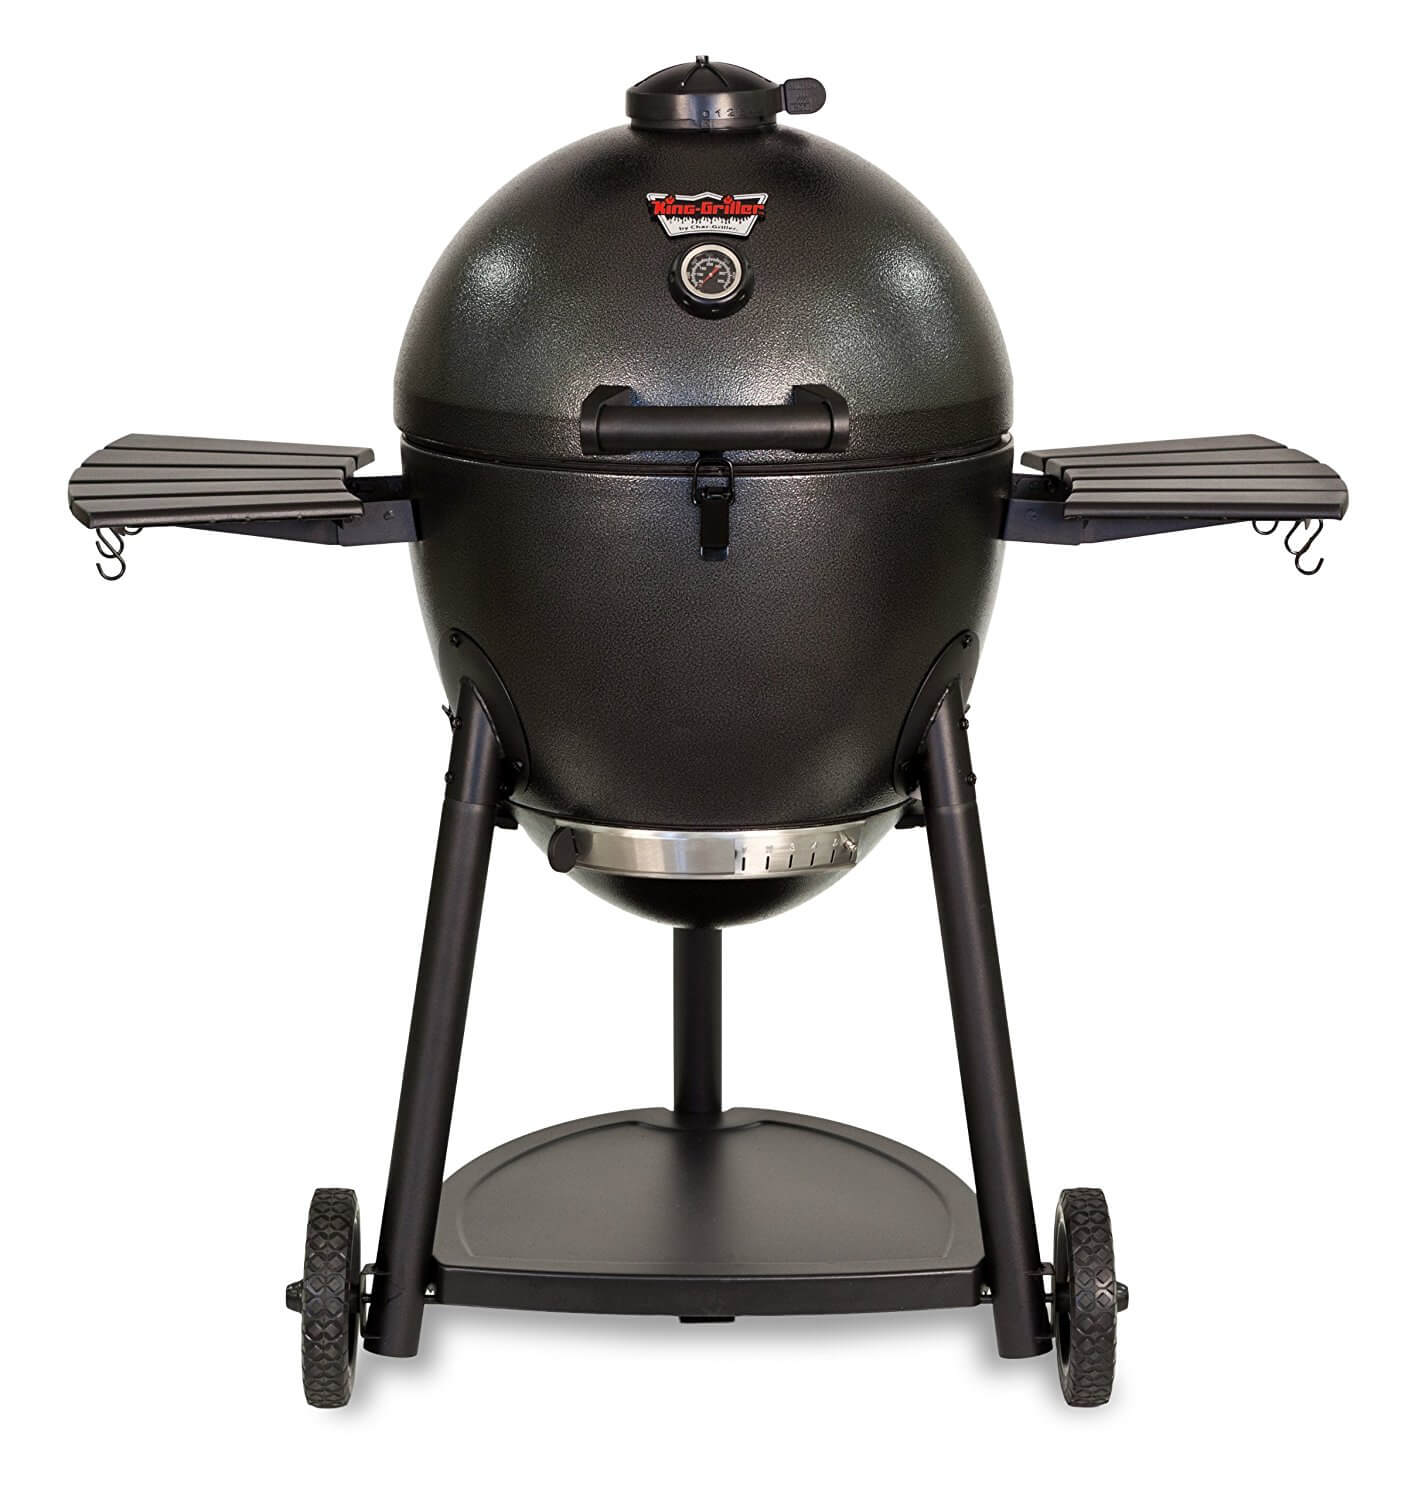 Char-Griller Kamado Kooker Charcoal Barbecue Grill and Smoker Review